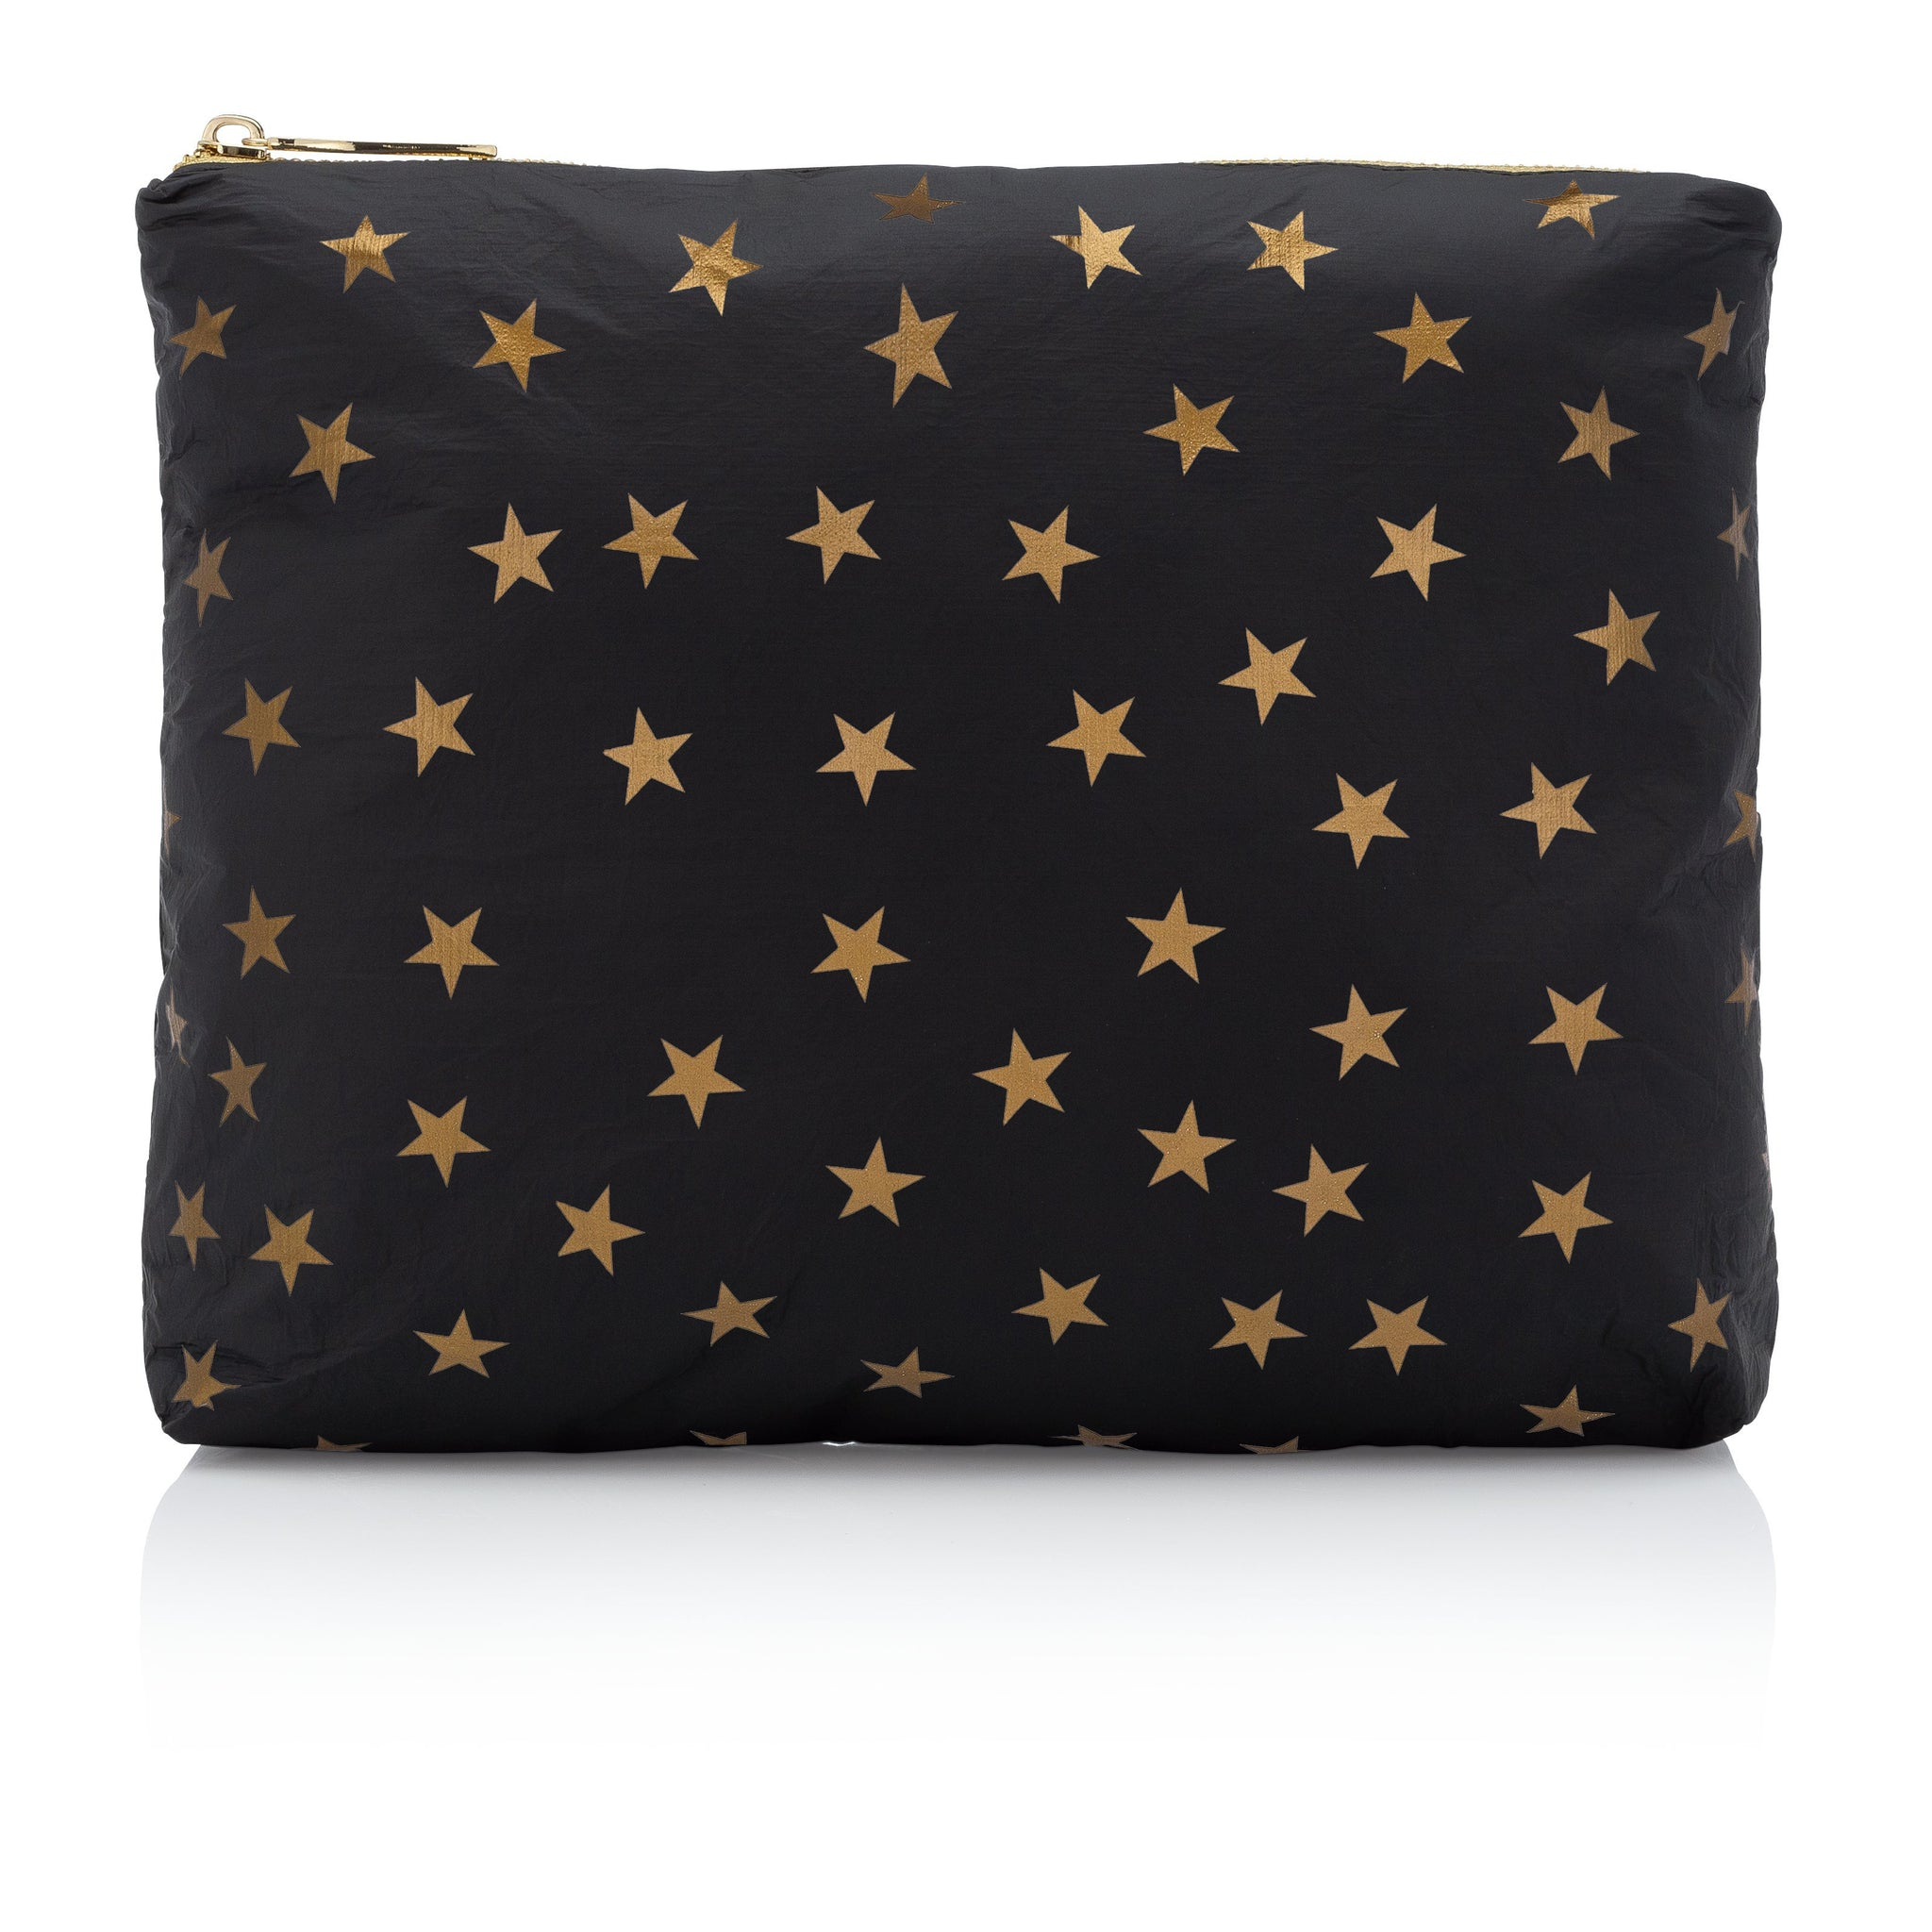 Makeup Pouch - Travel Pack - Toiletry Bag - Medium Pack - Black with Myriad Metallic Gold Stars